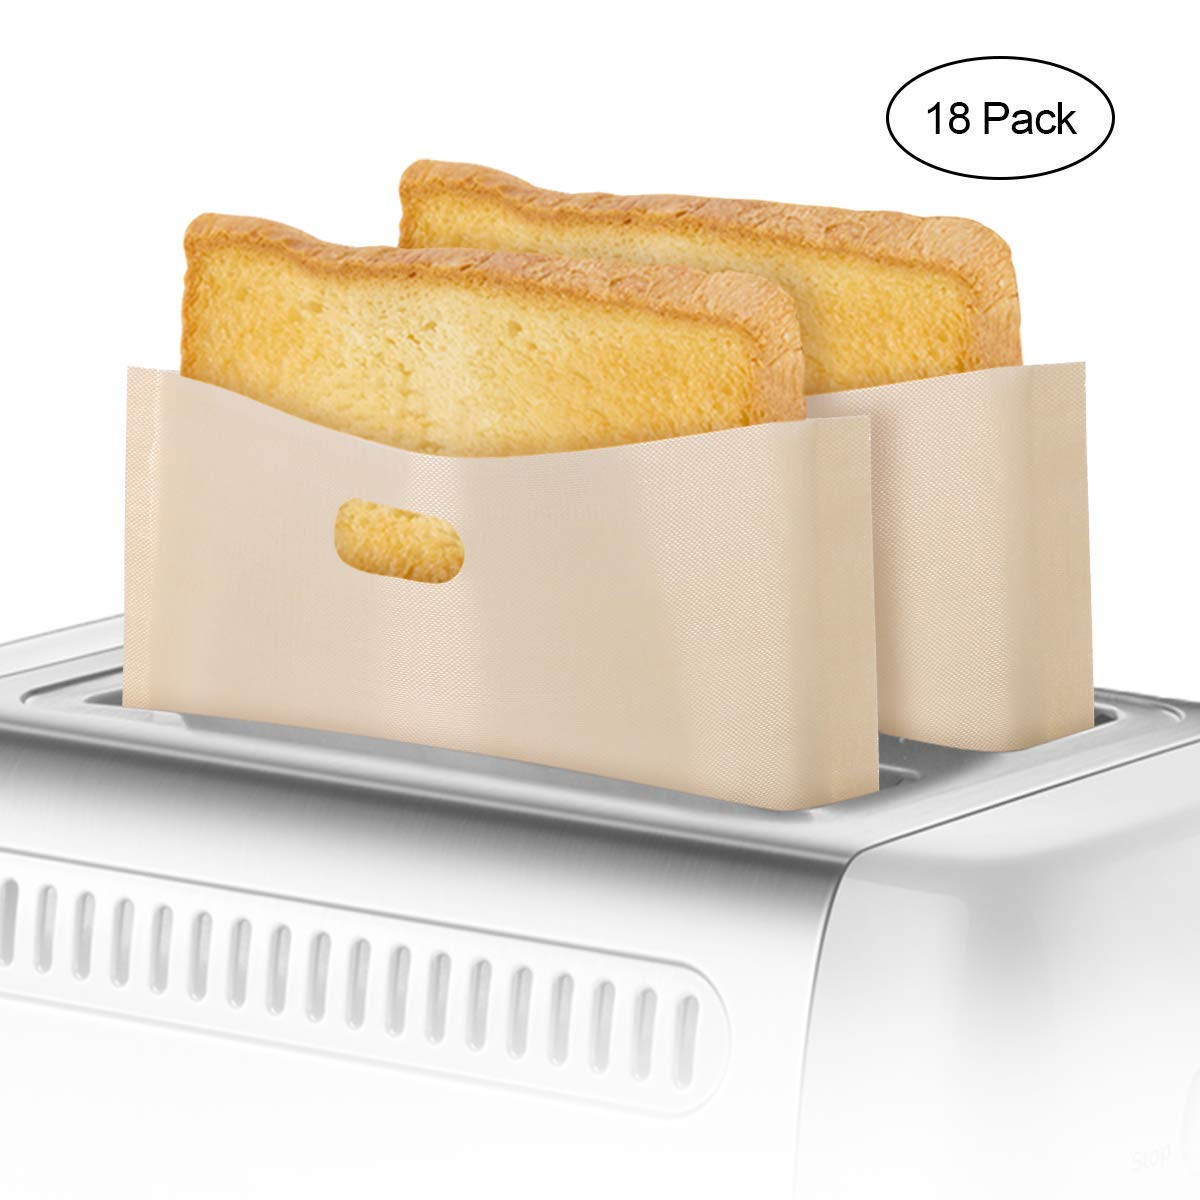 3 Sizes 18 Pack Toaster Bags Non-Stick Reusable Toaster Grilled Cheese Bags FDA Approved Food Grade Teflon Toaster Bags for Grilled Cheese Sandwiches, Chicken, Nuggets, Panini and Garlic Toasts